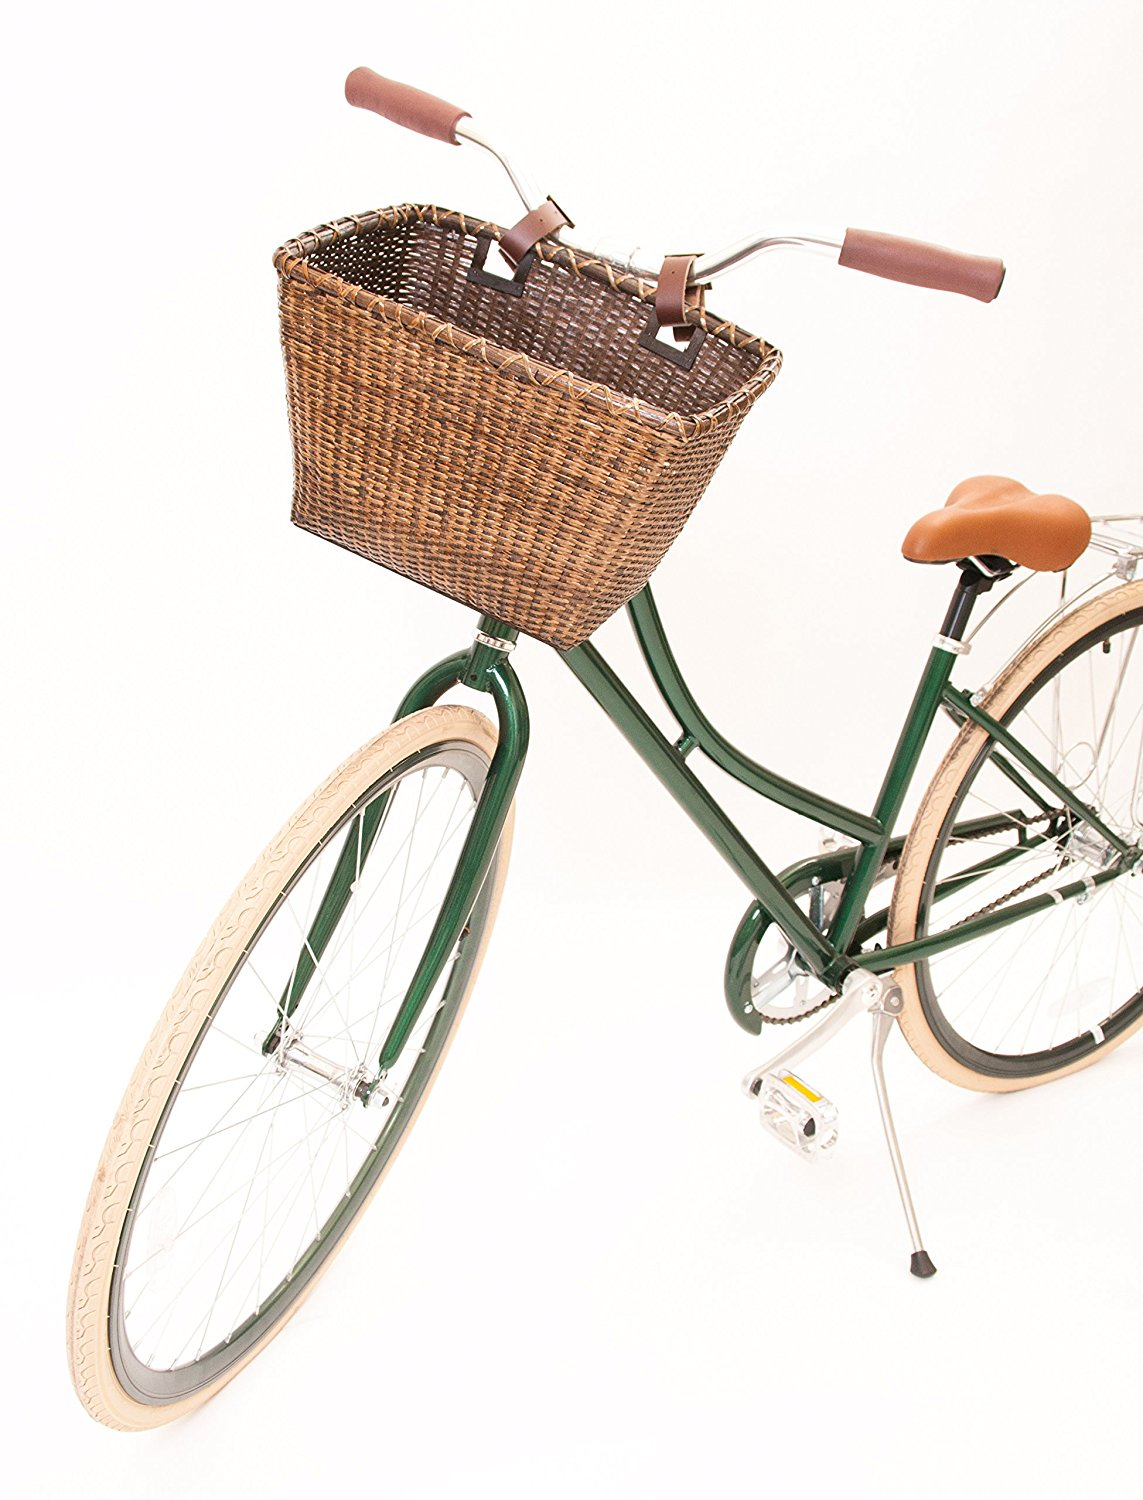 12 Eye-Catching Bike Baskets for the Ultimate Beach Ride